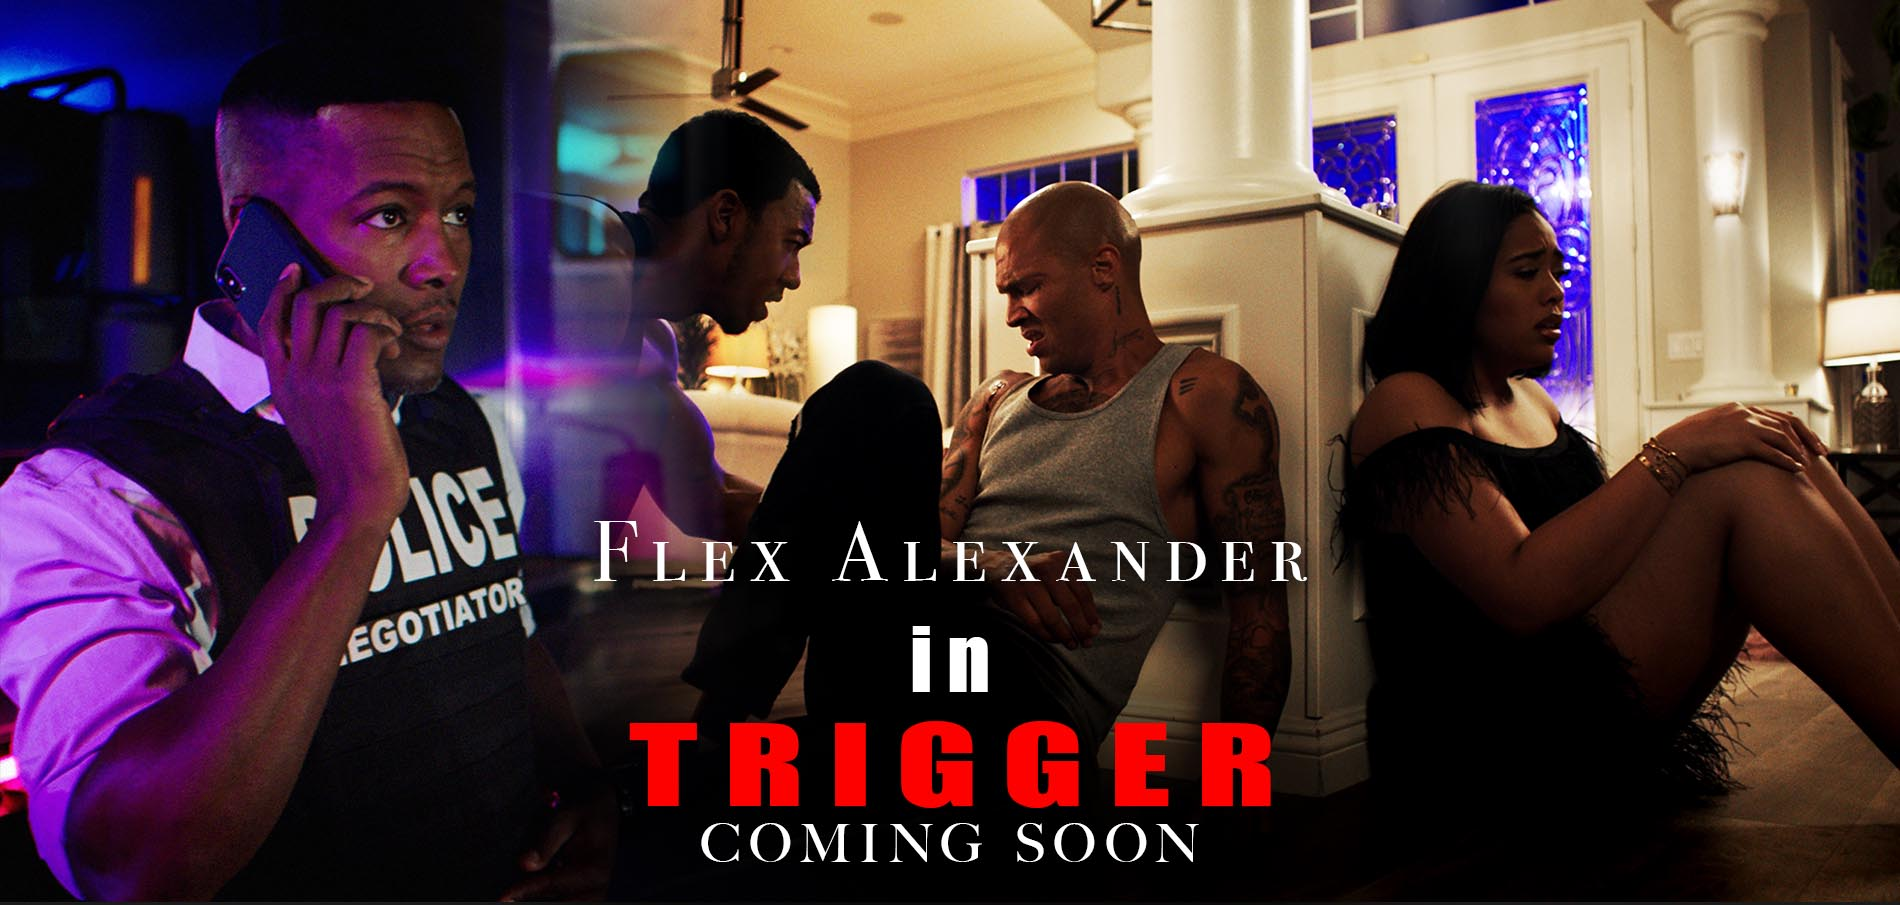 flex Alexander trigger footage films chris stokes